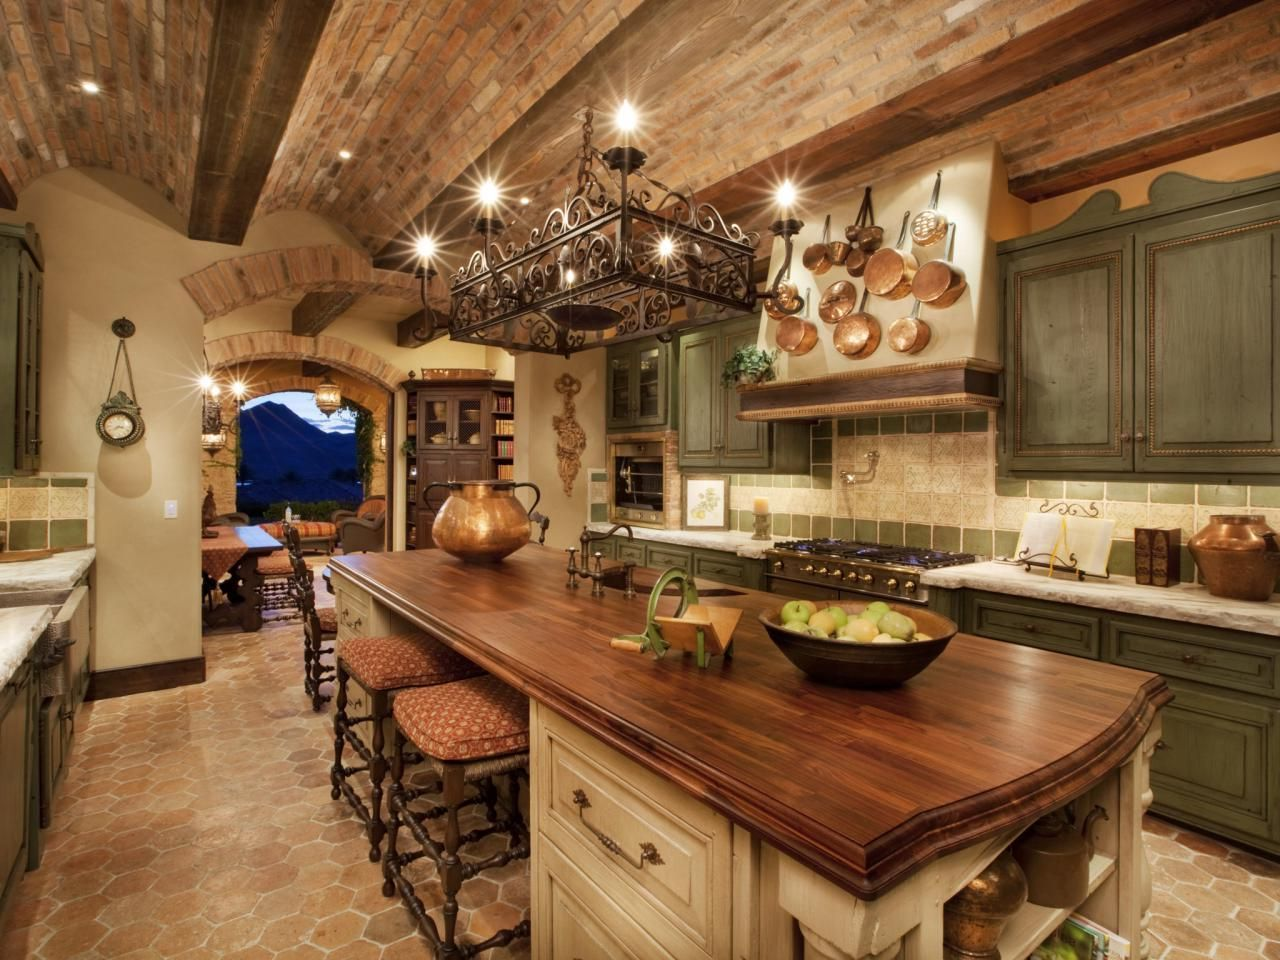 Tuscan Country Kitchen Ideas The Home Builders Tuscan Kitchen Italian Kitchen Design Tuscan Kitchen Design